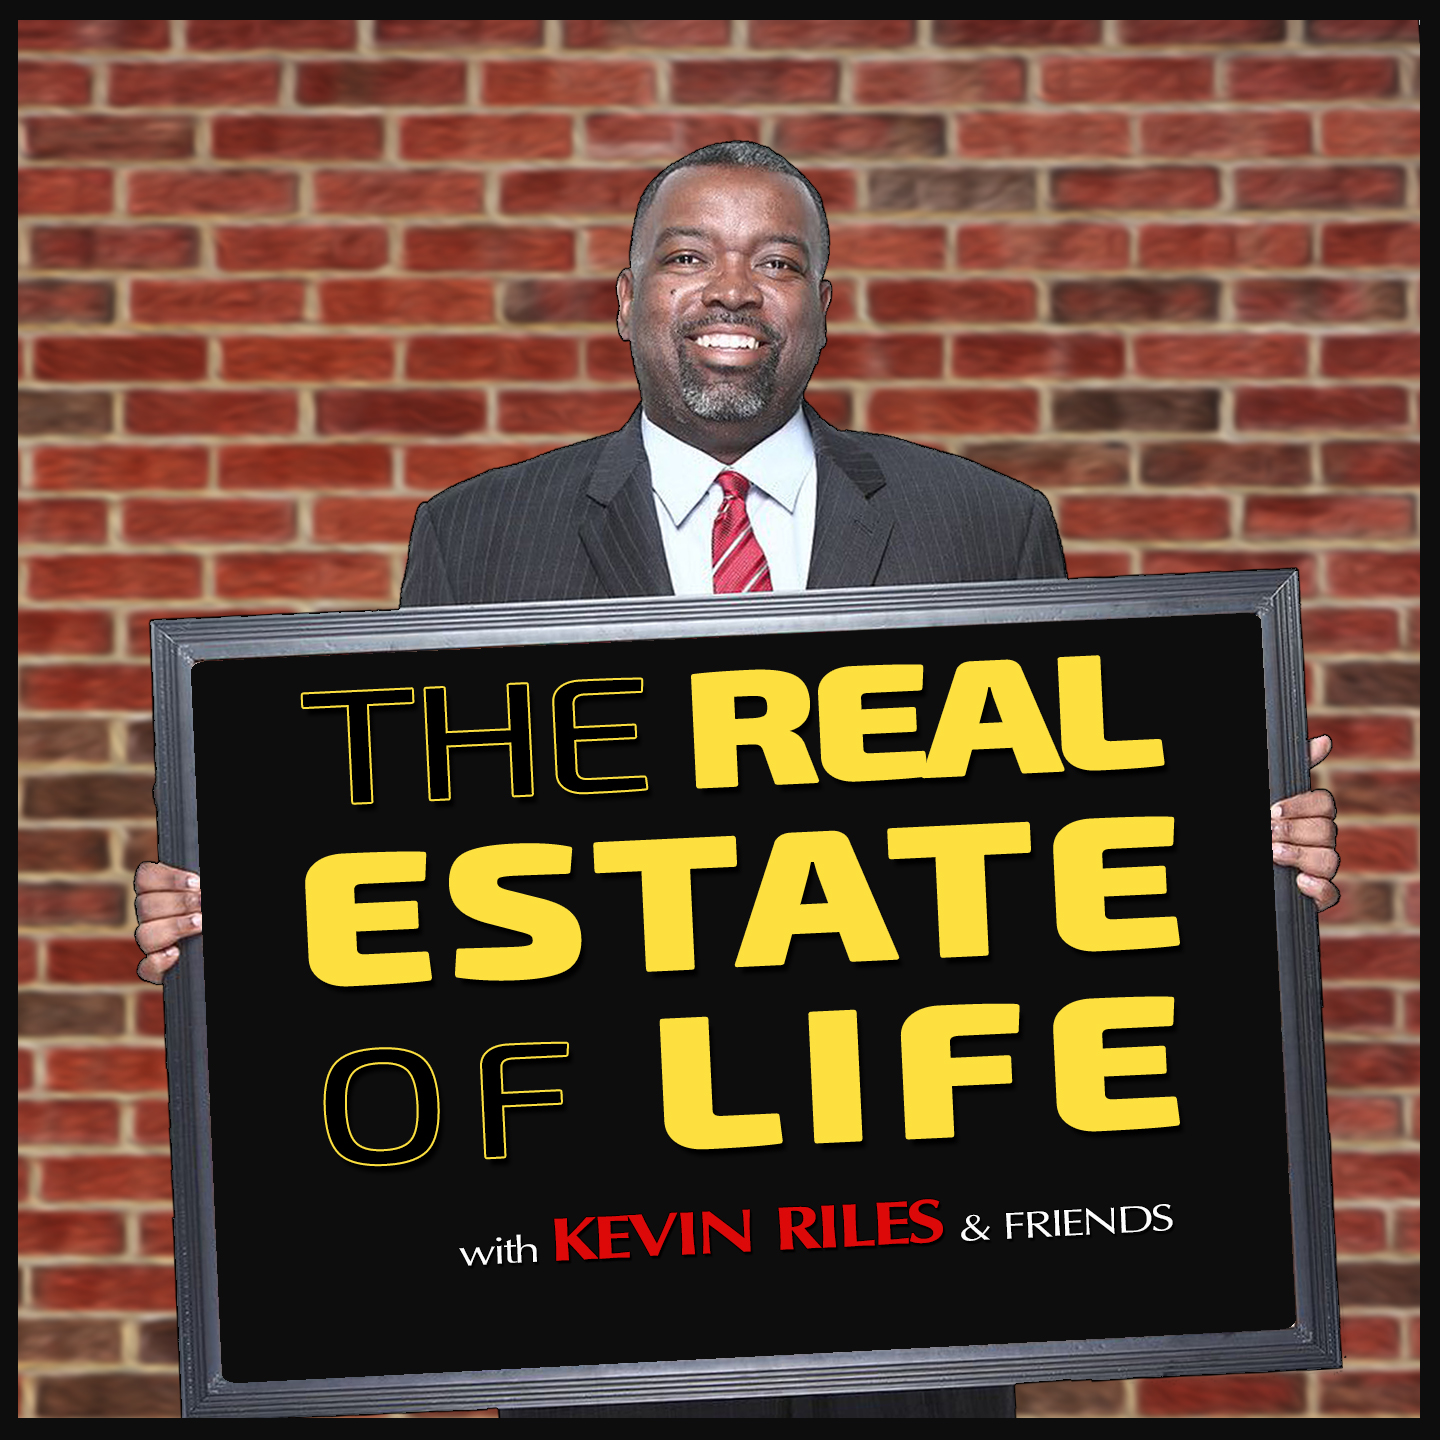 The Real Estate of Life